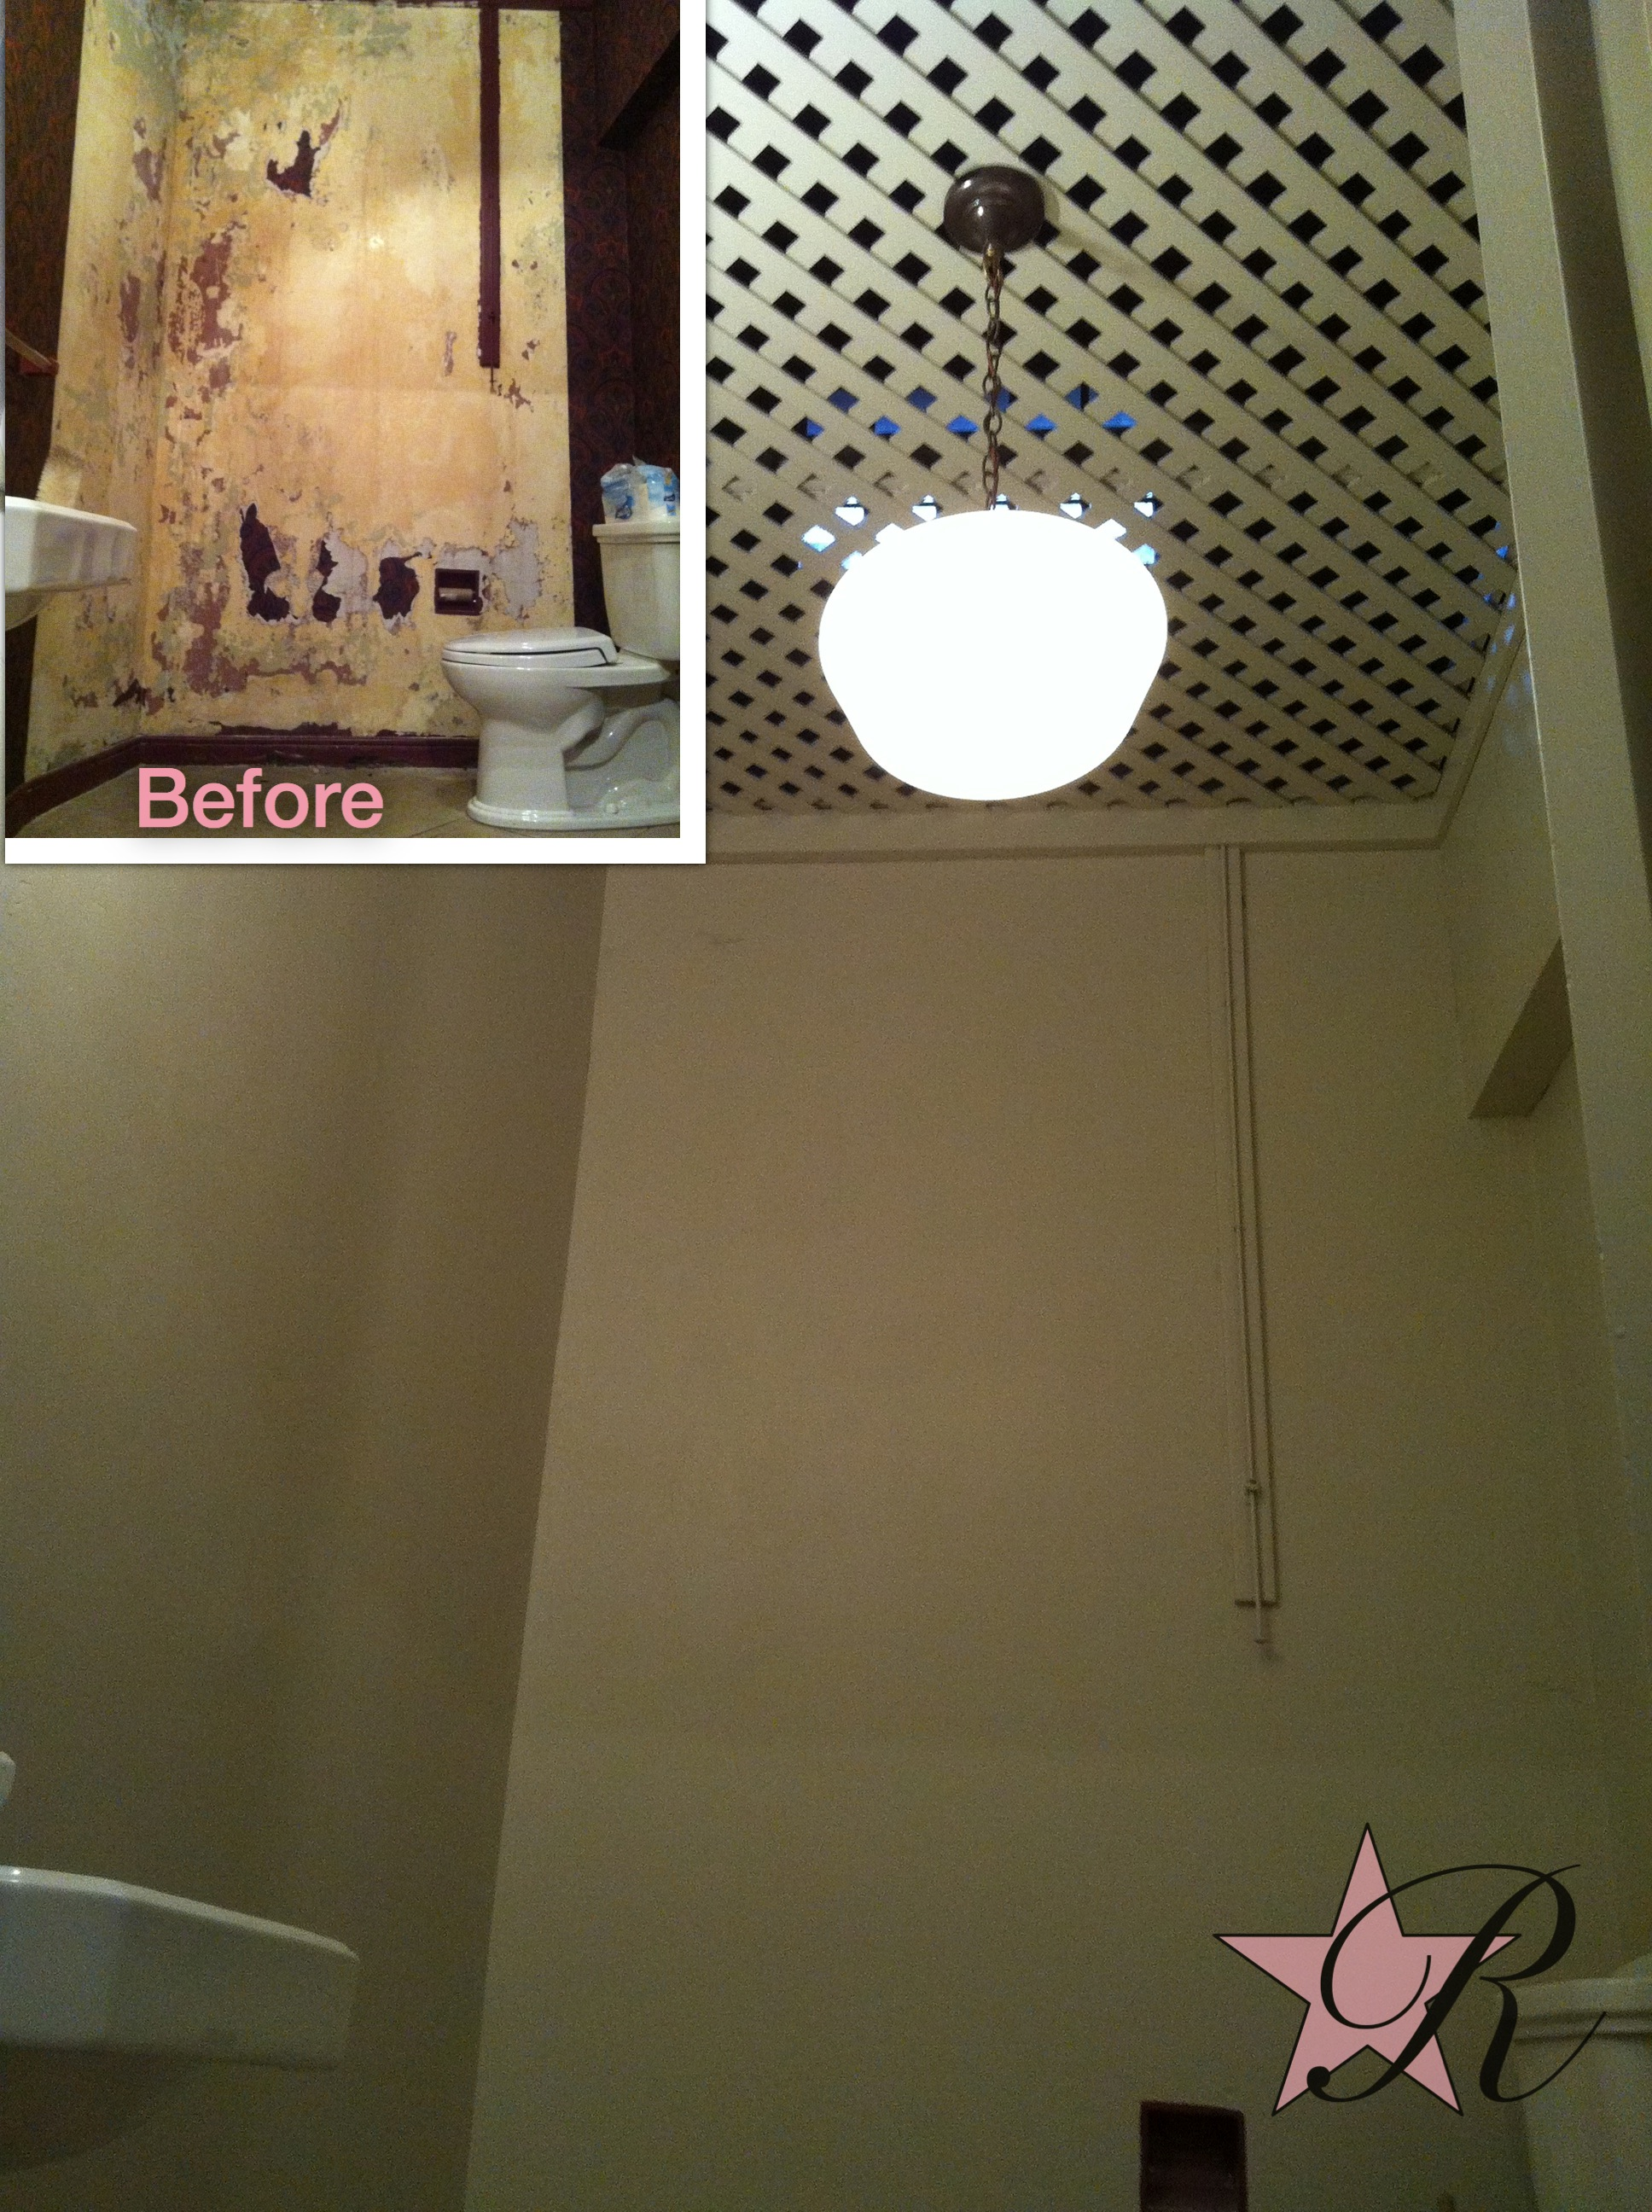 The basement bathroom wallpaper was removed and the walls and lattice ceiling painted.